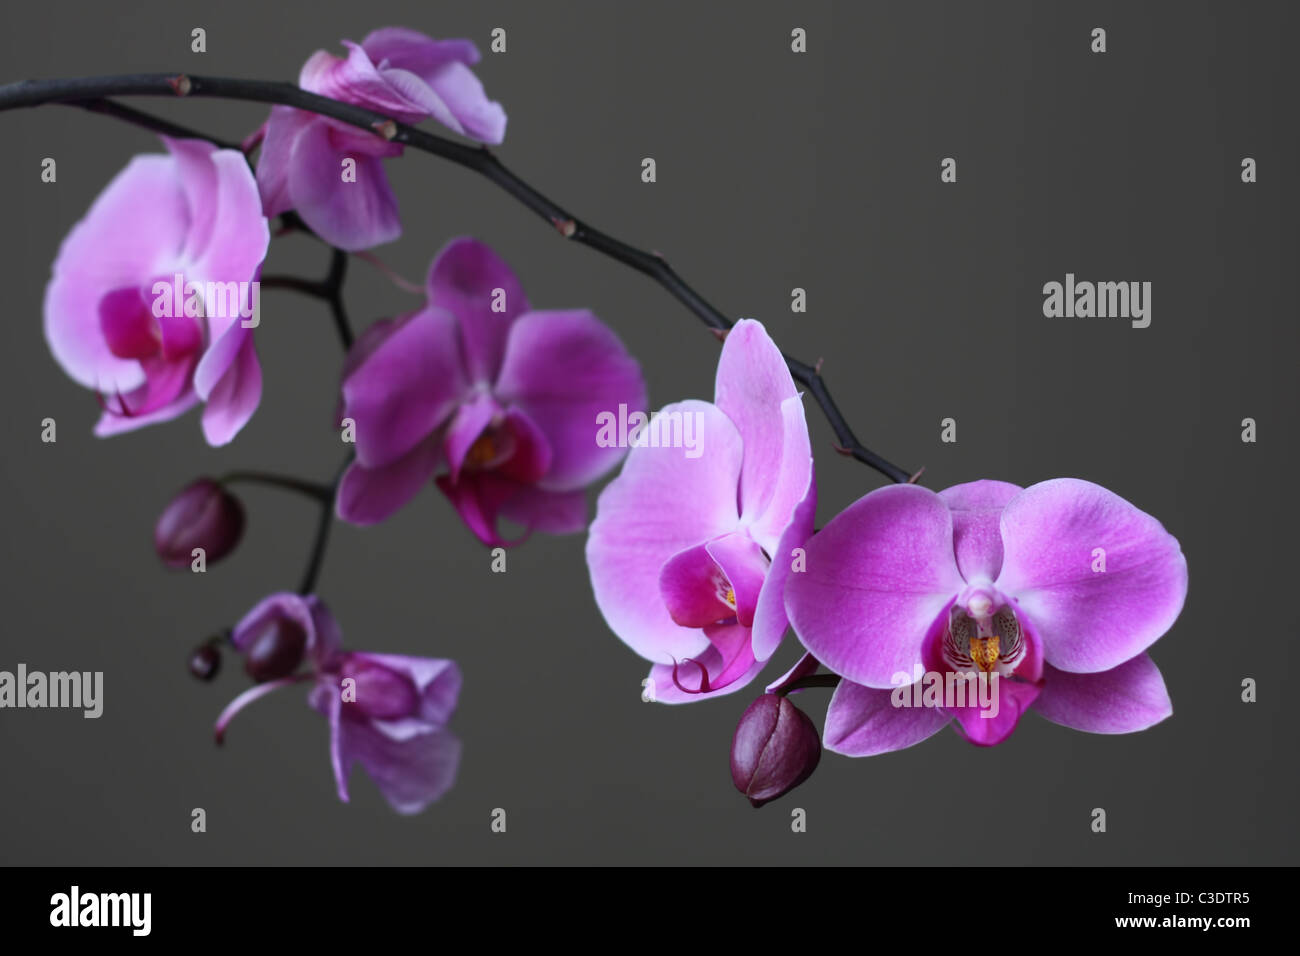 Elegant picture of a purple orchid in blossom perfect for a tranquil background or zen like concept. - Stock Image